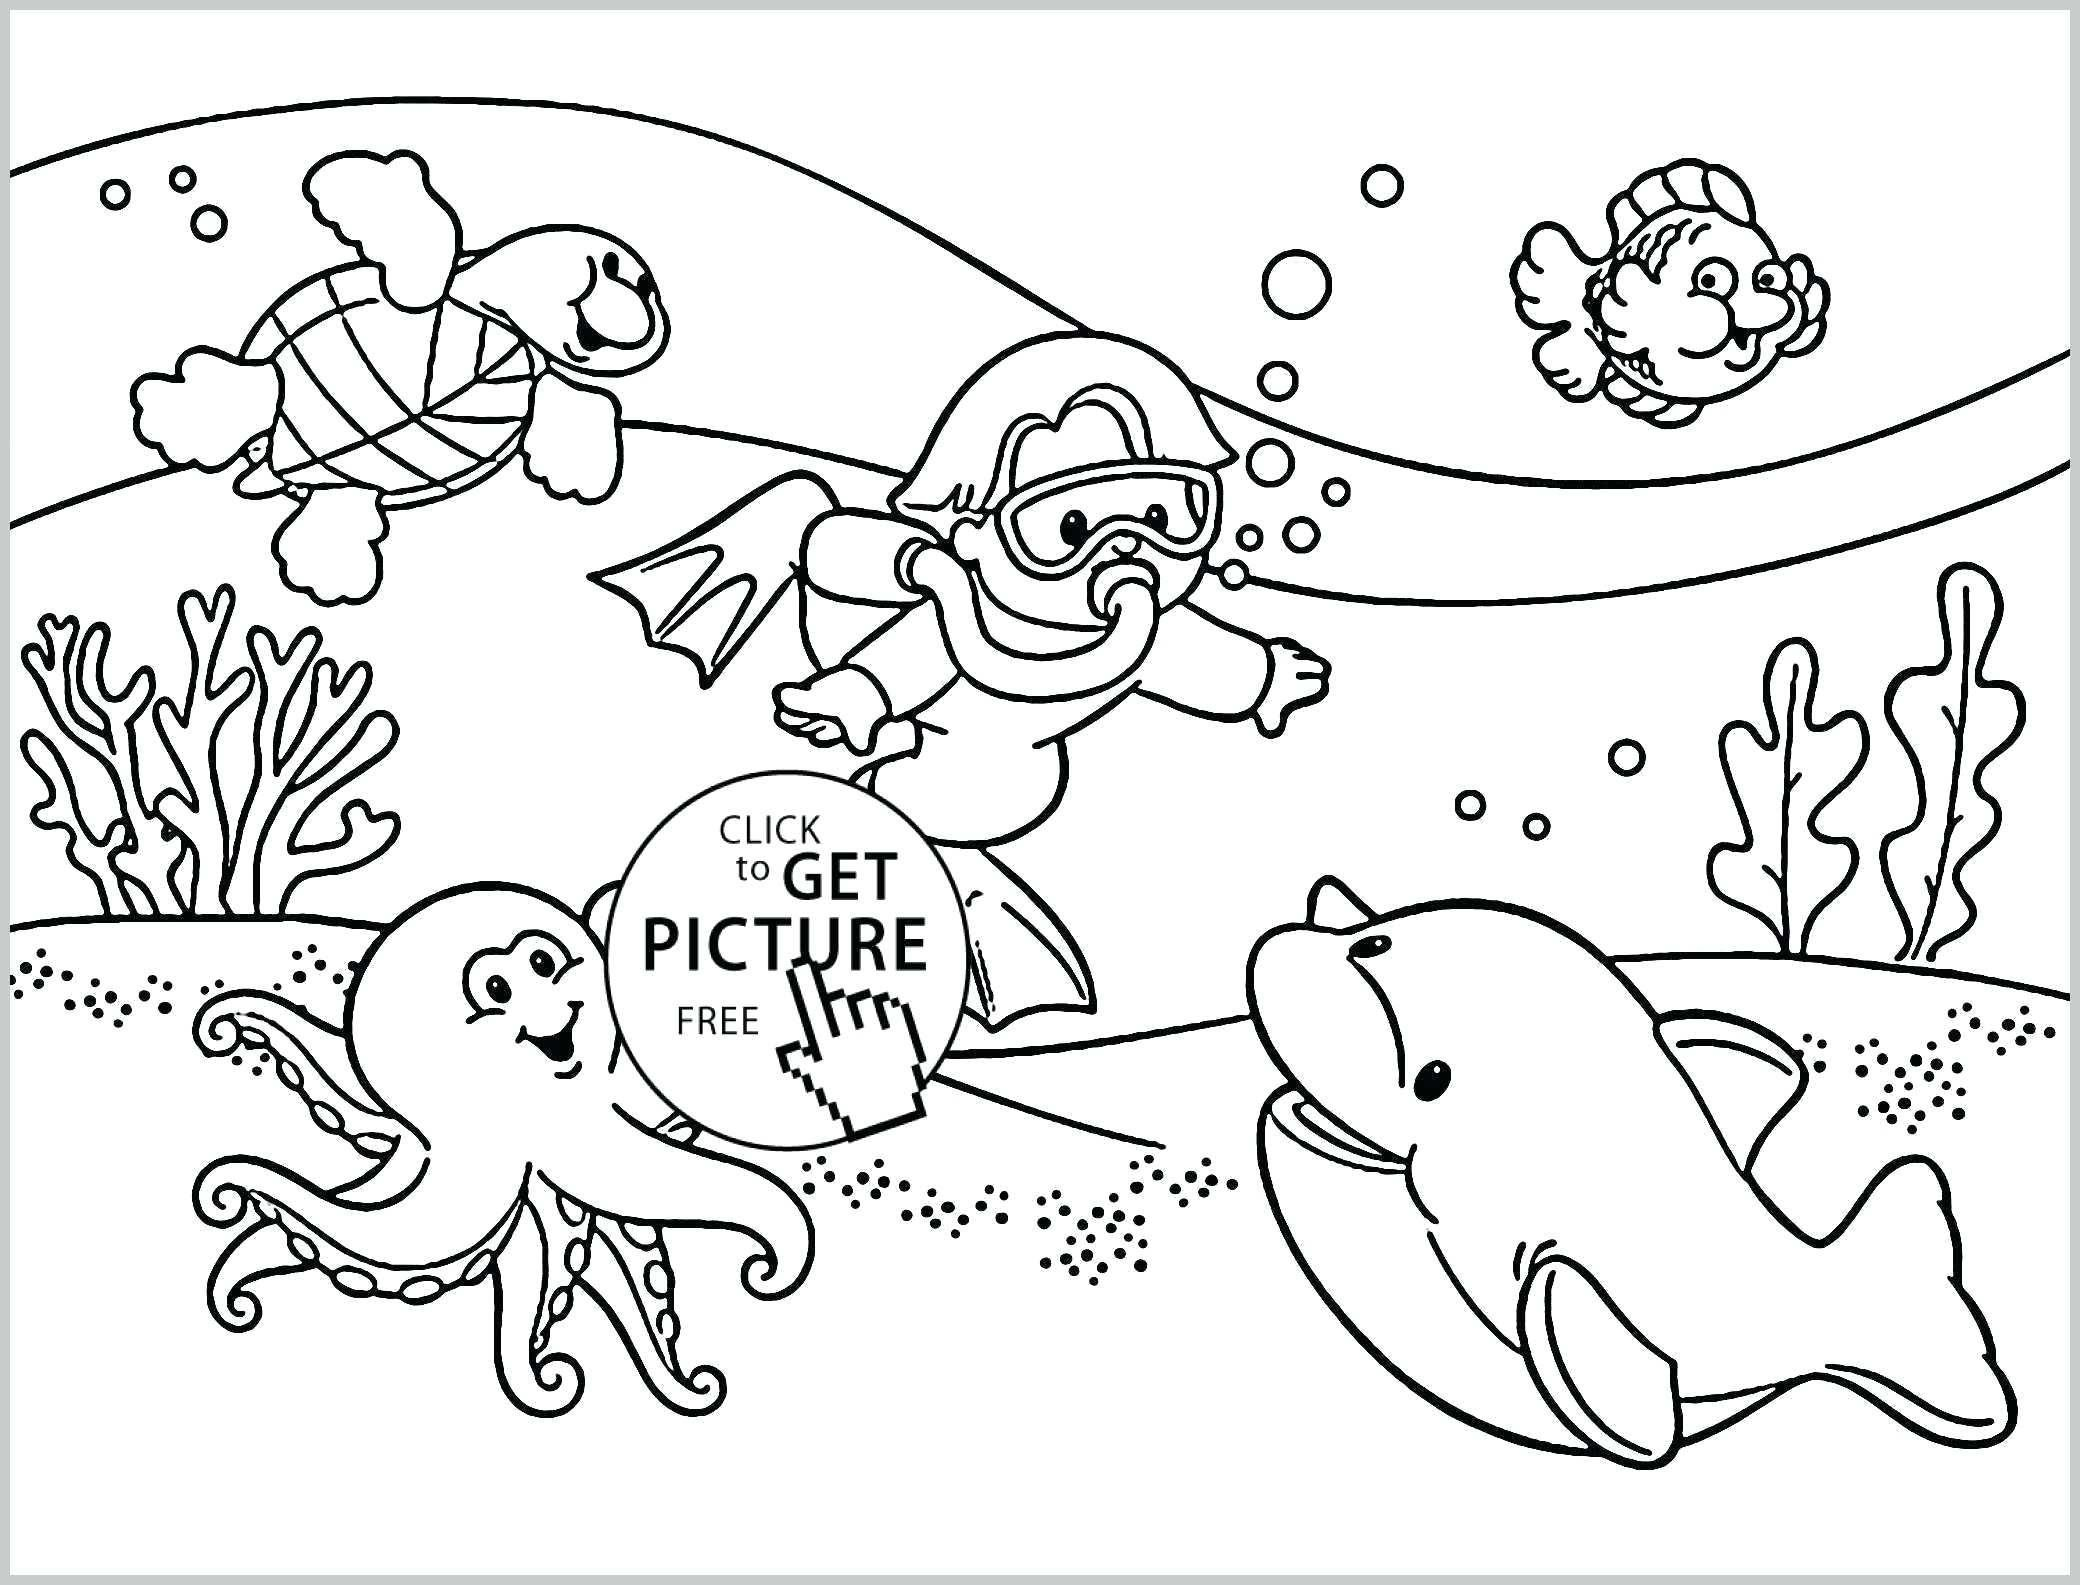 Awesome Little Unicorn Coloring Pages That You Must Know